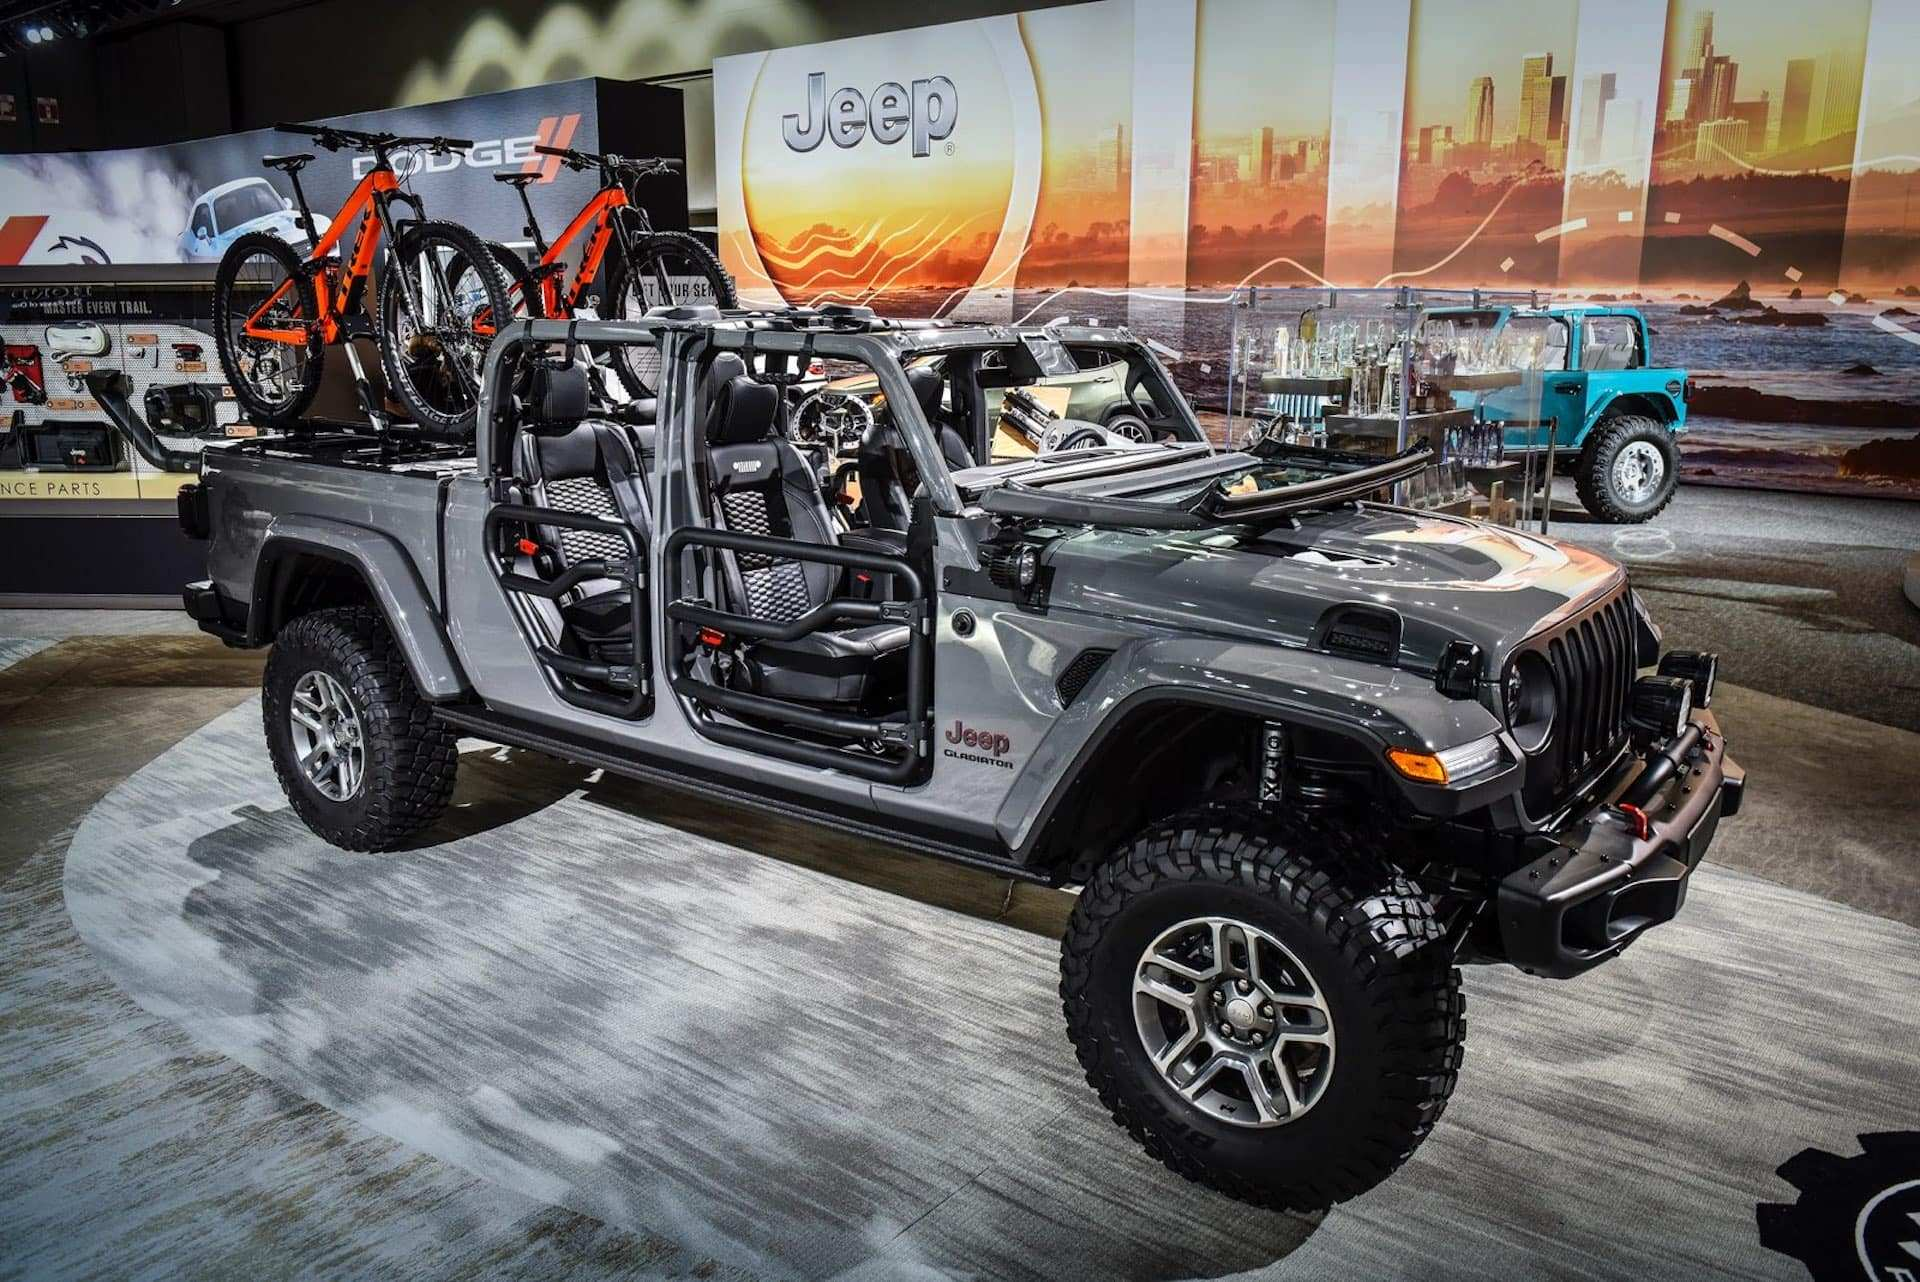 28 Gallery of 2020 Jeep Gladiator Youtube Overview for 2020 Jeep Gladiator Youtube